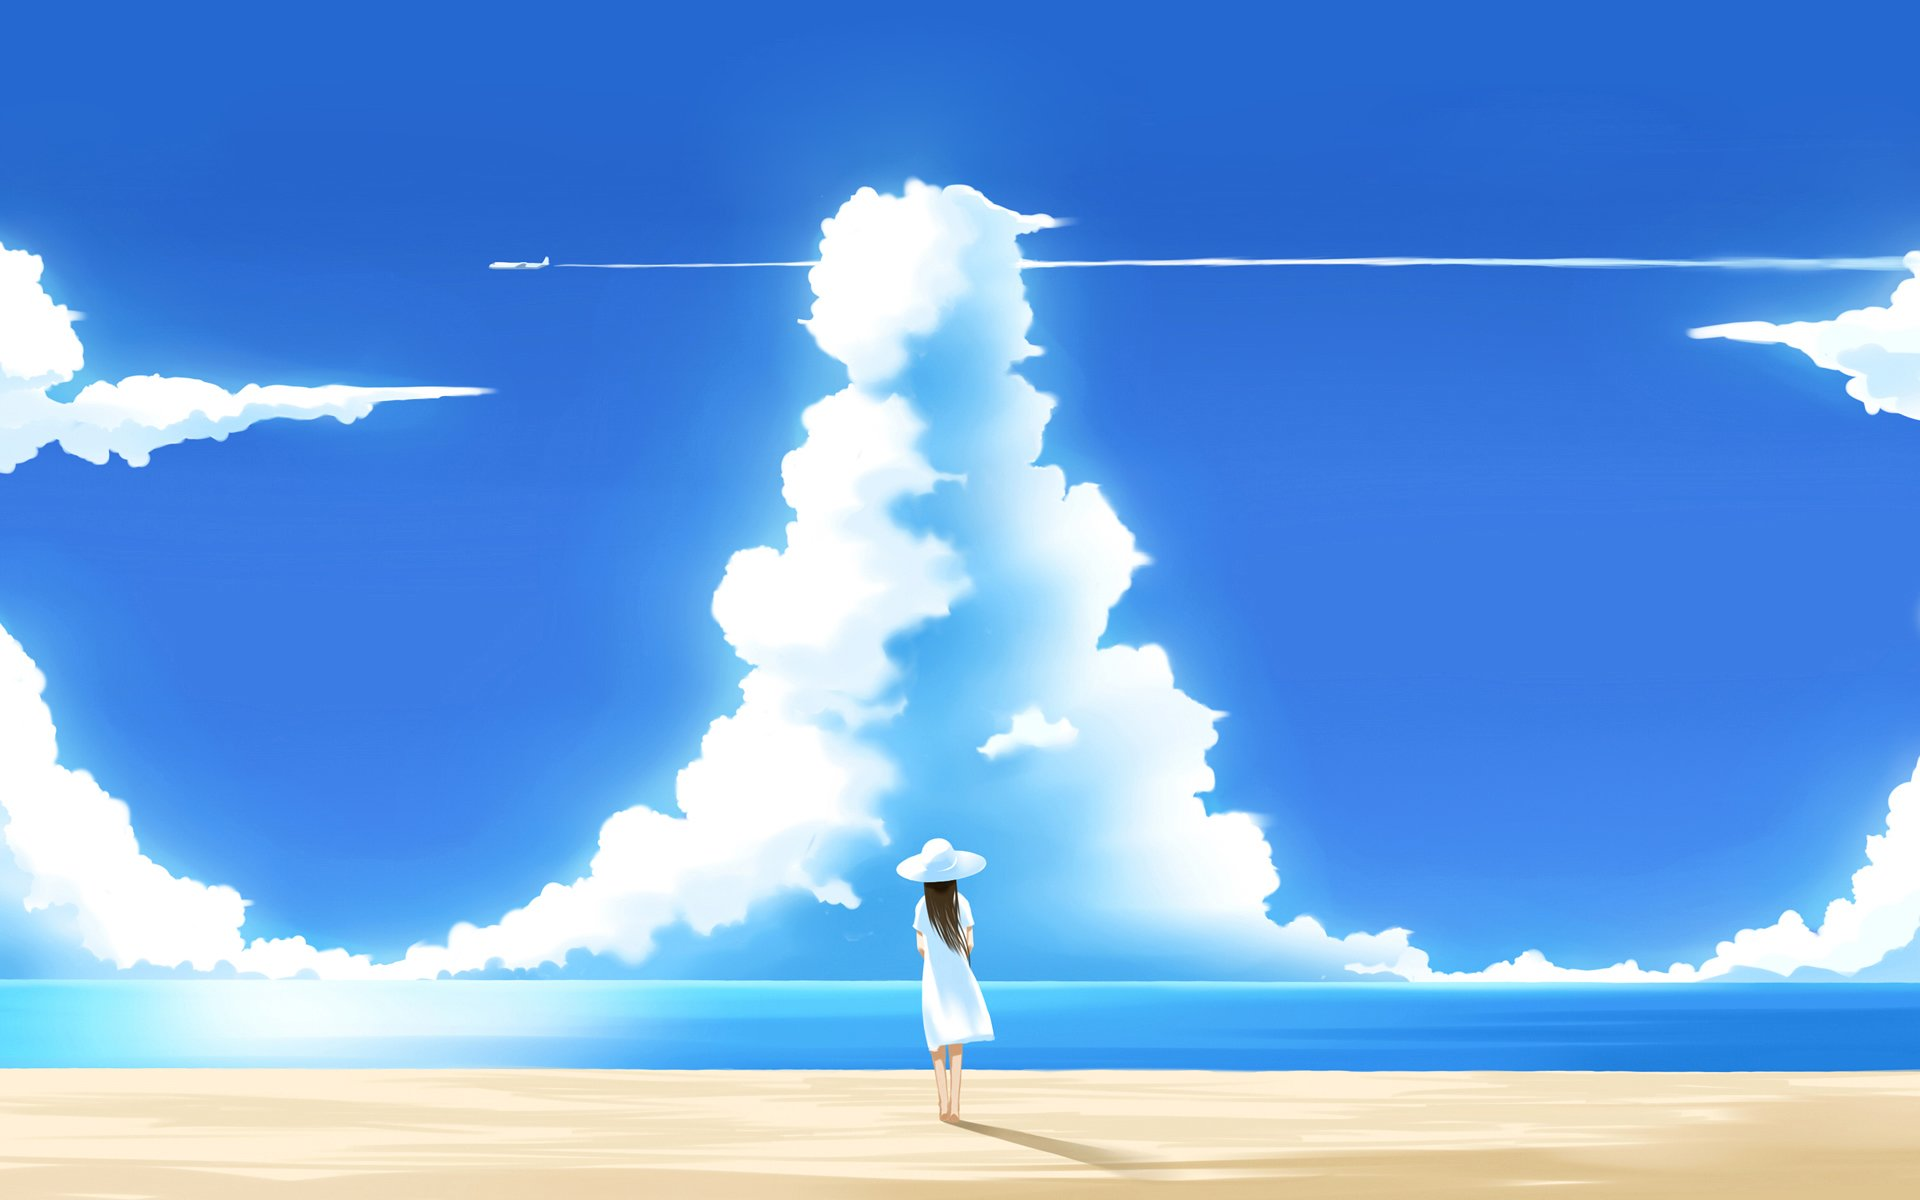 Anime Beach Background Images Pictures   Becuo 1920x1200